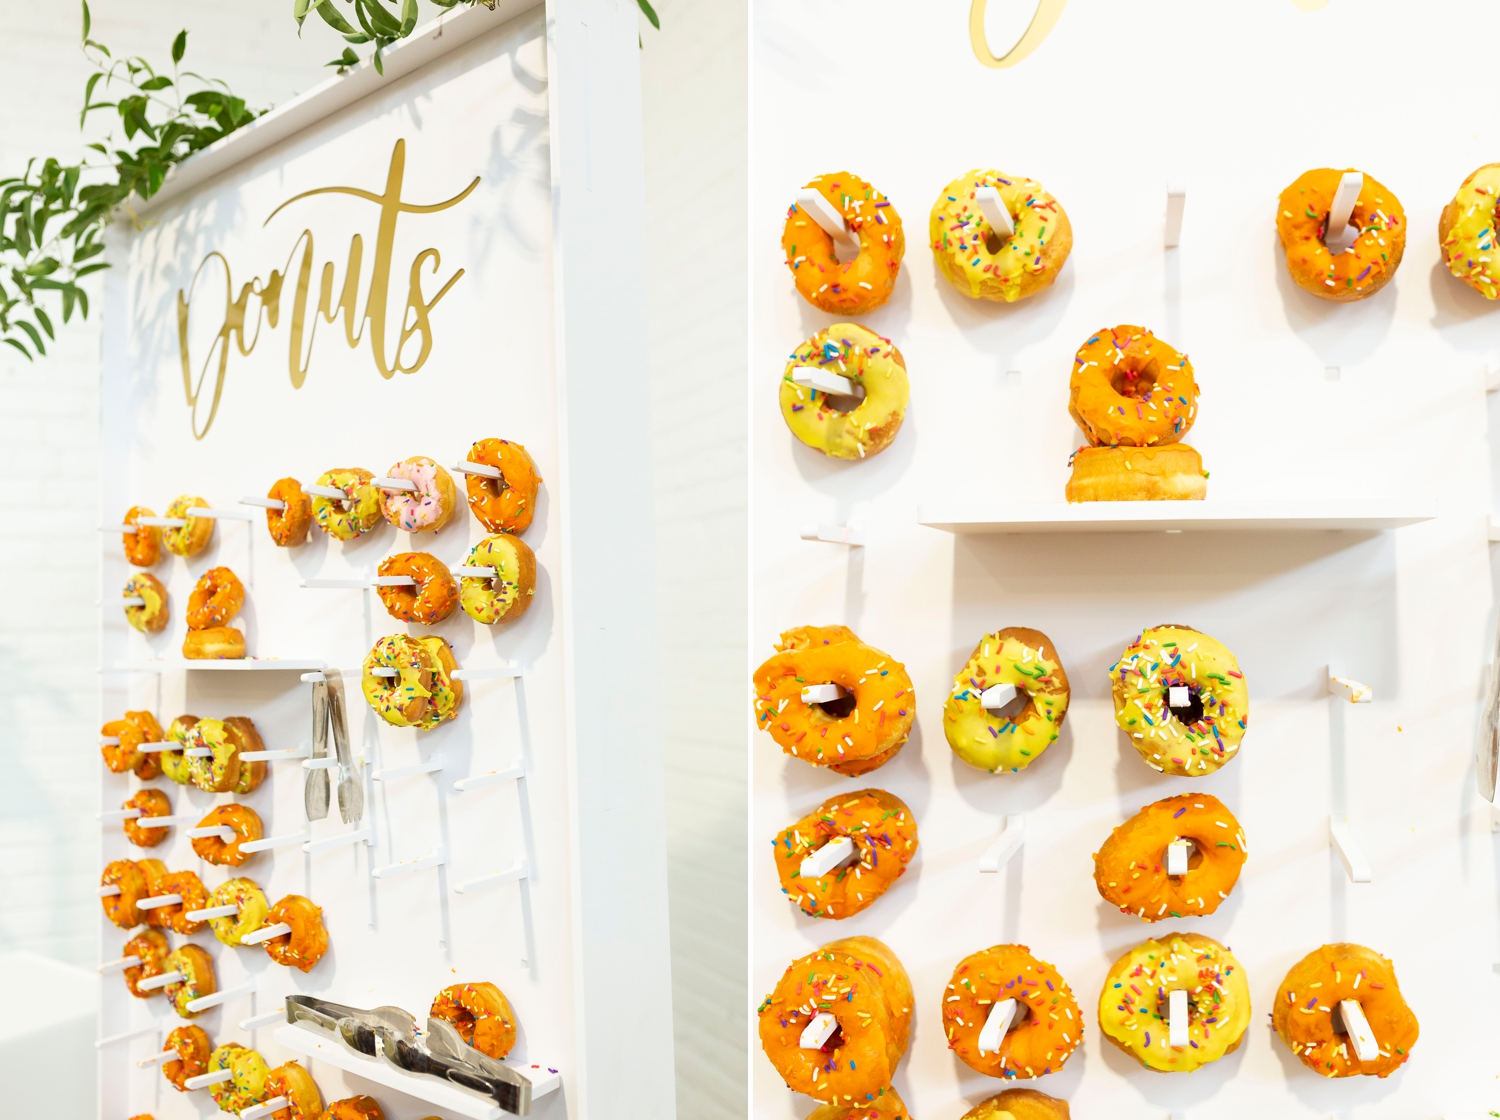 donut wall, wedding donuts, donut wall at wedding, wedding food ideas, the pro experience, the madison venue, cleveland wedding photographer, the madison wedding venue, a taste of excellence catering, a charming fete, cle music group, ohio wedding photographer, wedding photographer in cleveland, the knot cleveland, summer wedding ideas, luxury wedding, summer wedding colors, orange wedding, polka dot wedding, nuage designs inc, event source rentals, borrow curated